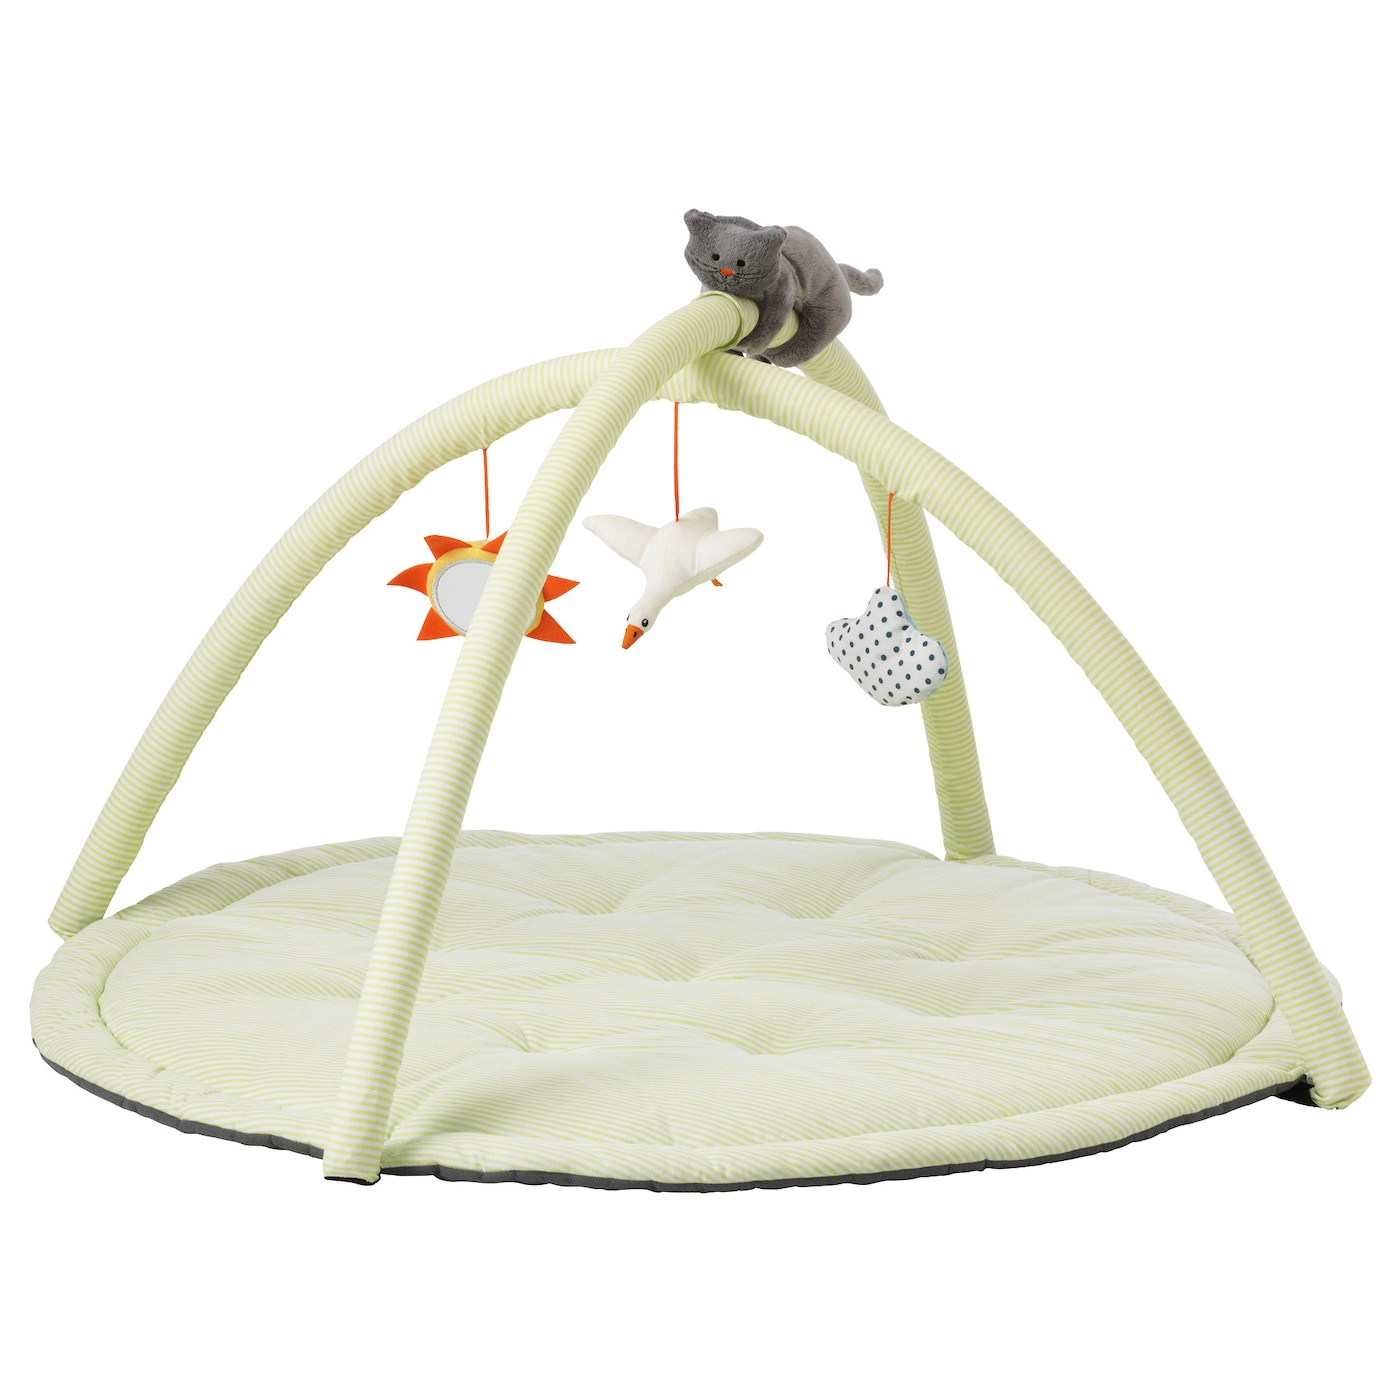 Ikea Leka Baby Gym Reaching Out For Toys Stimulates The S Development Of Eye Hand